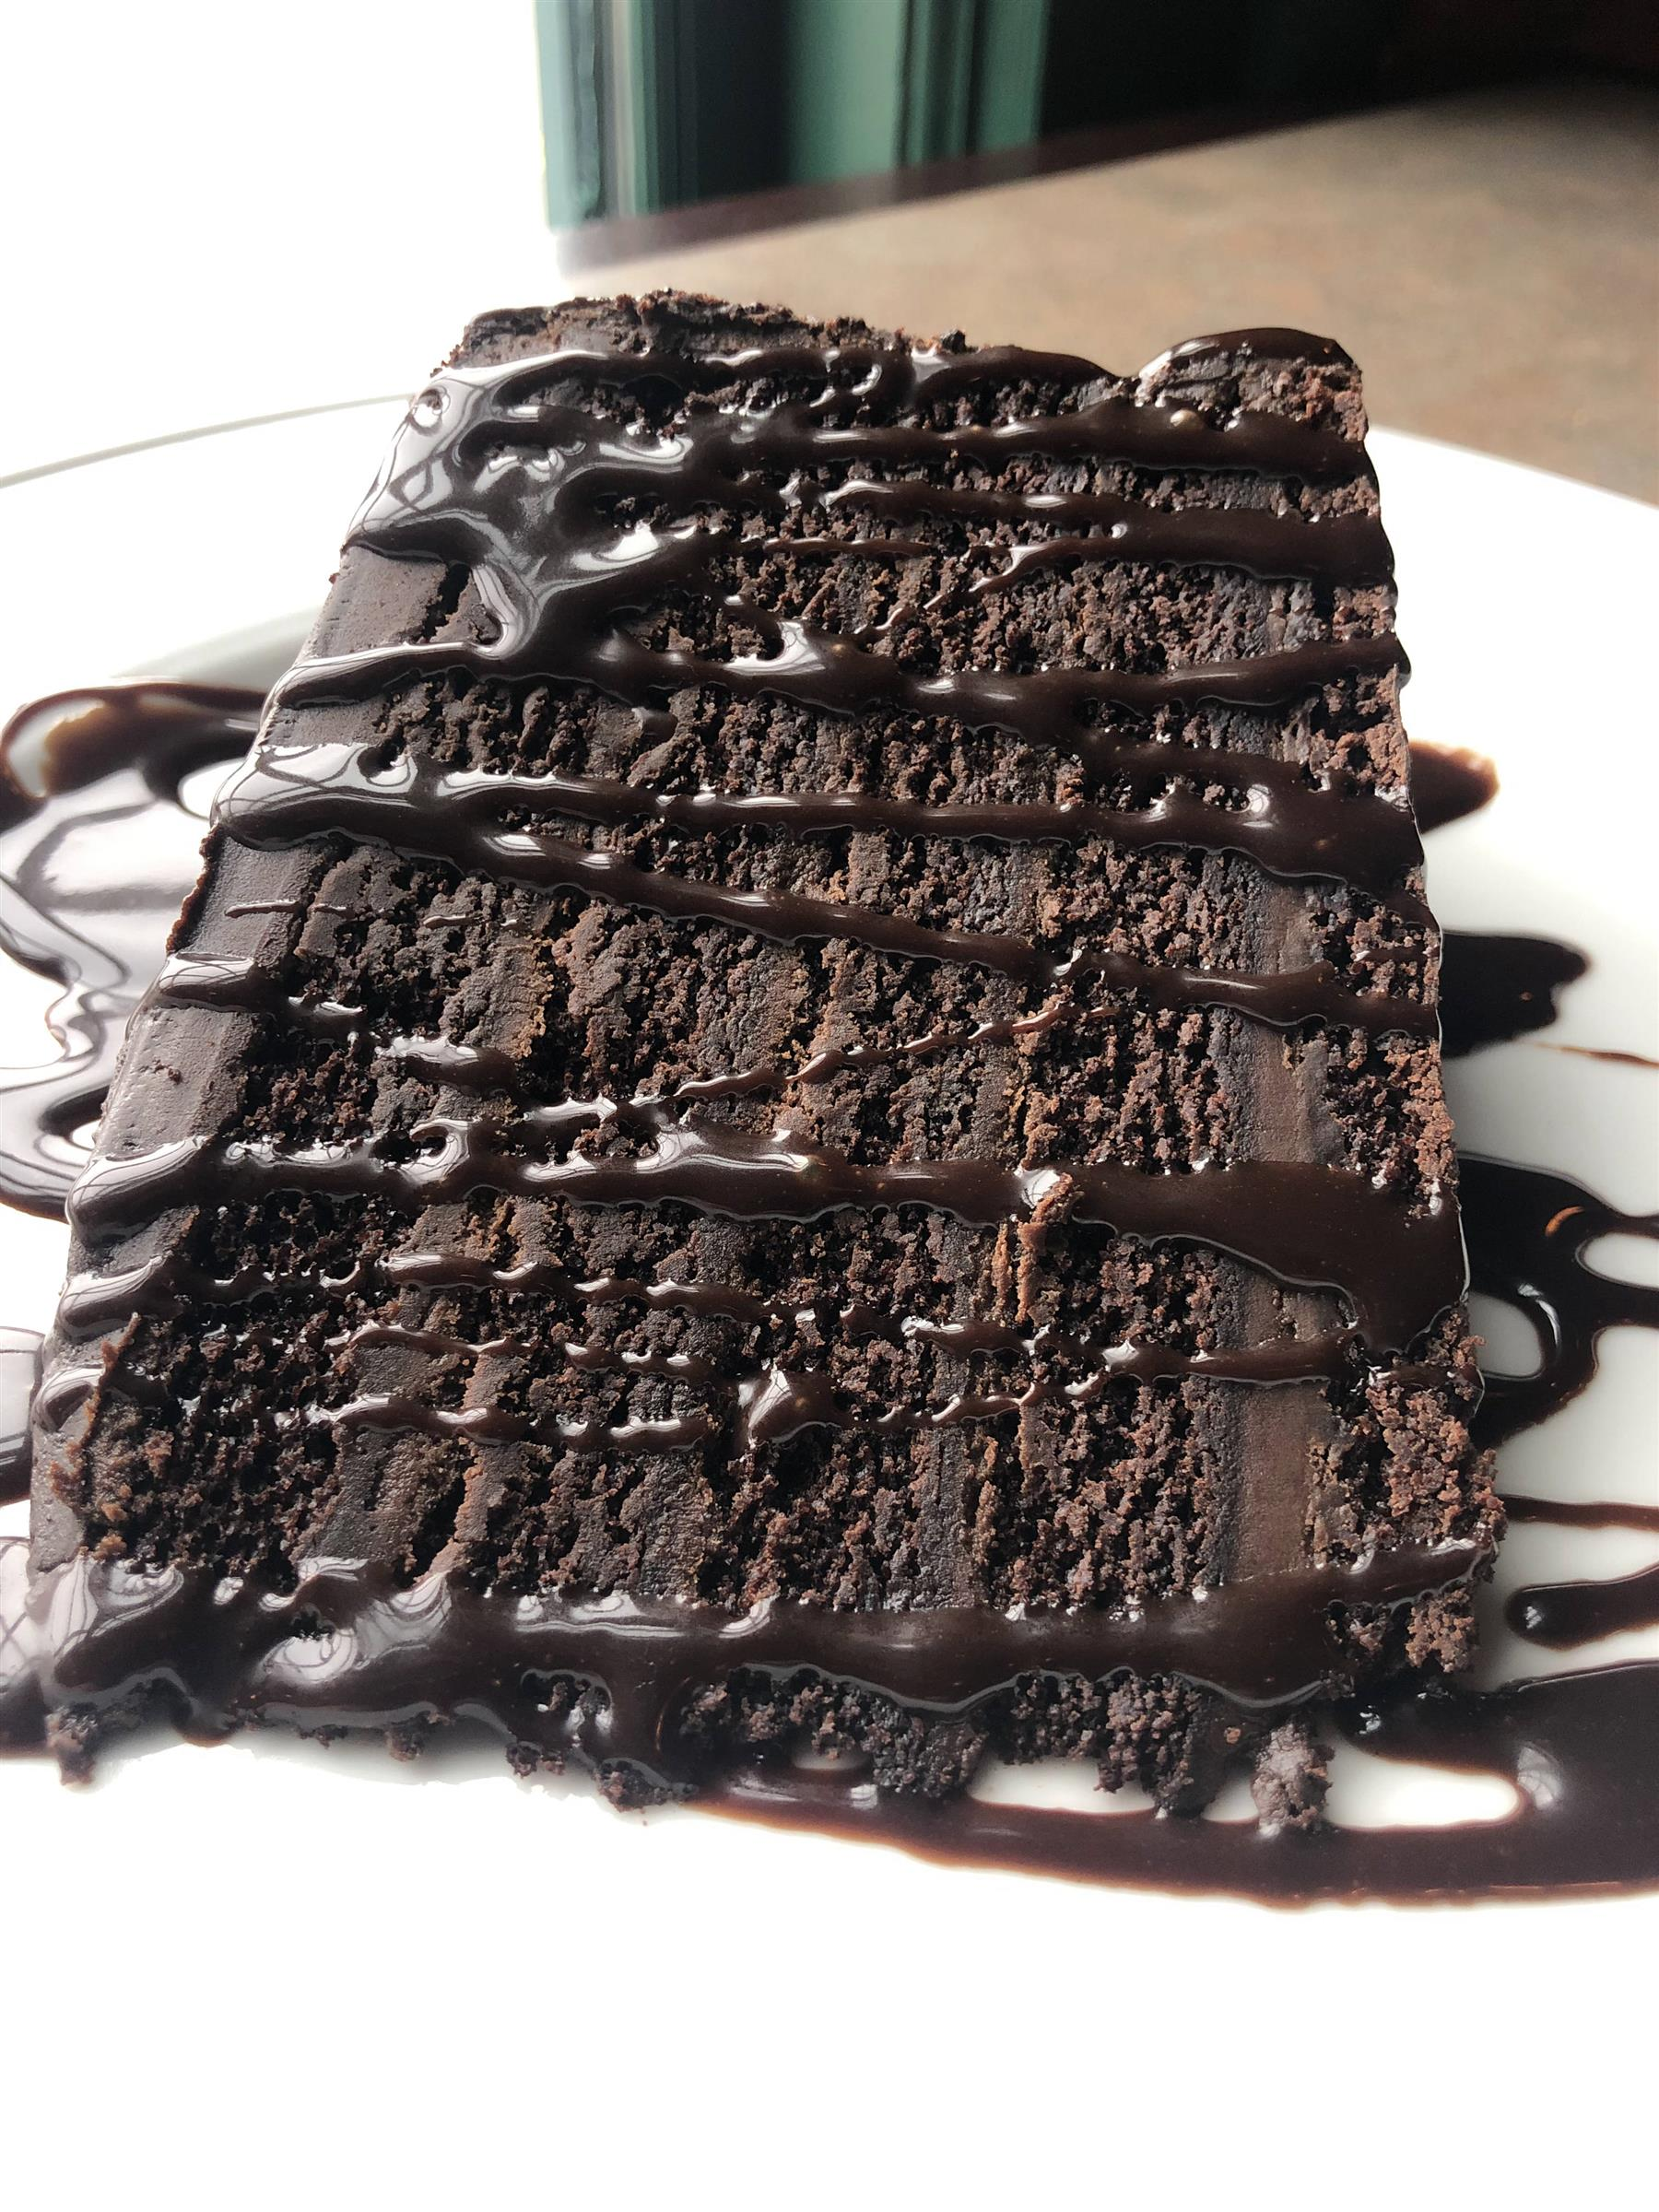 thick slice of chocolate cake with chocolate drizzle